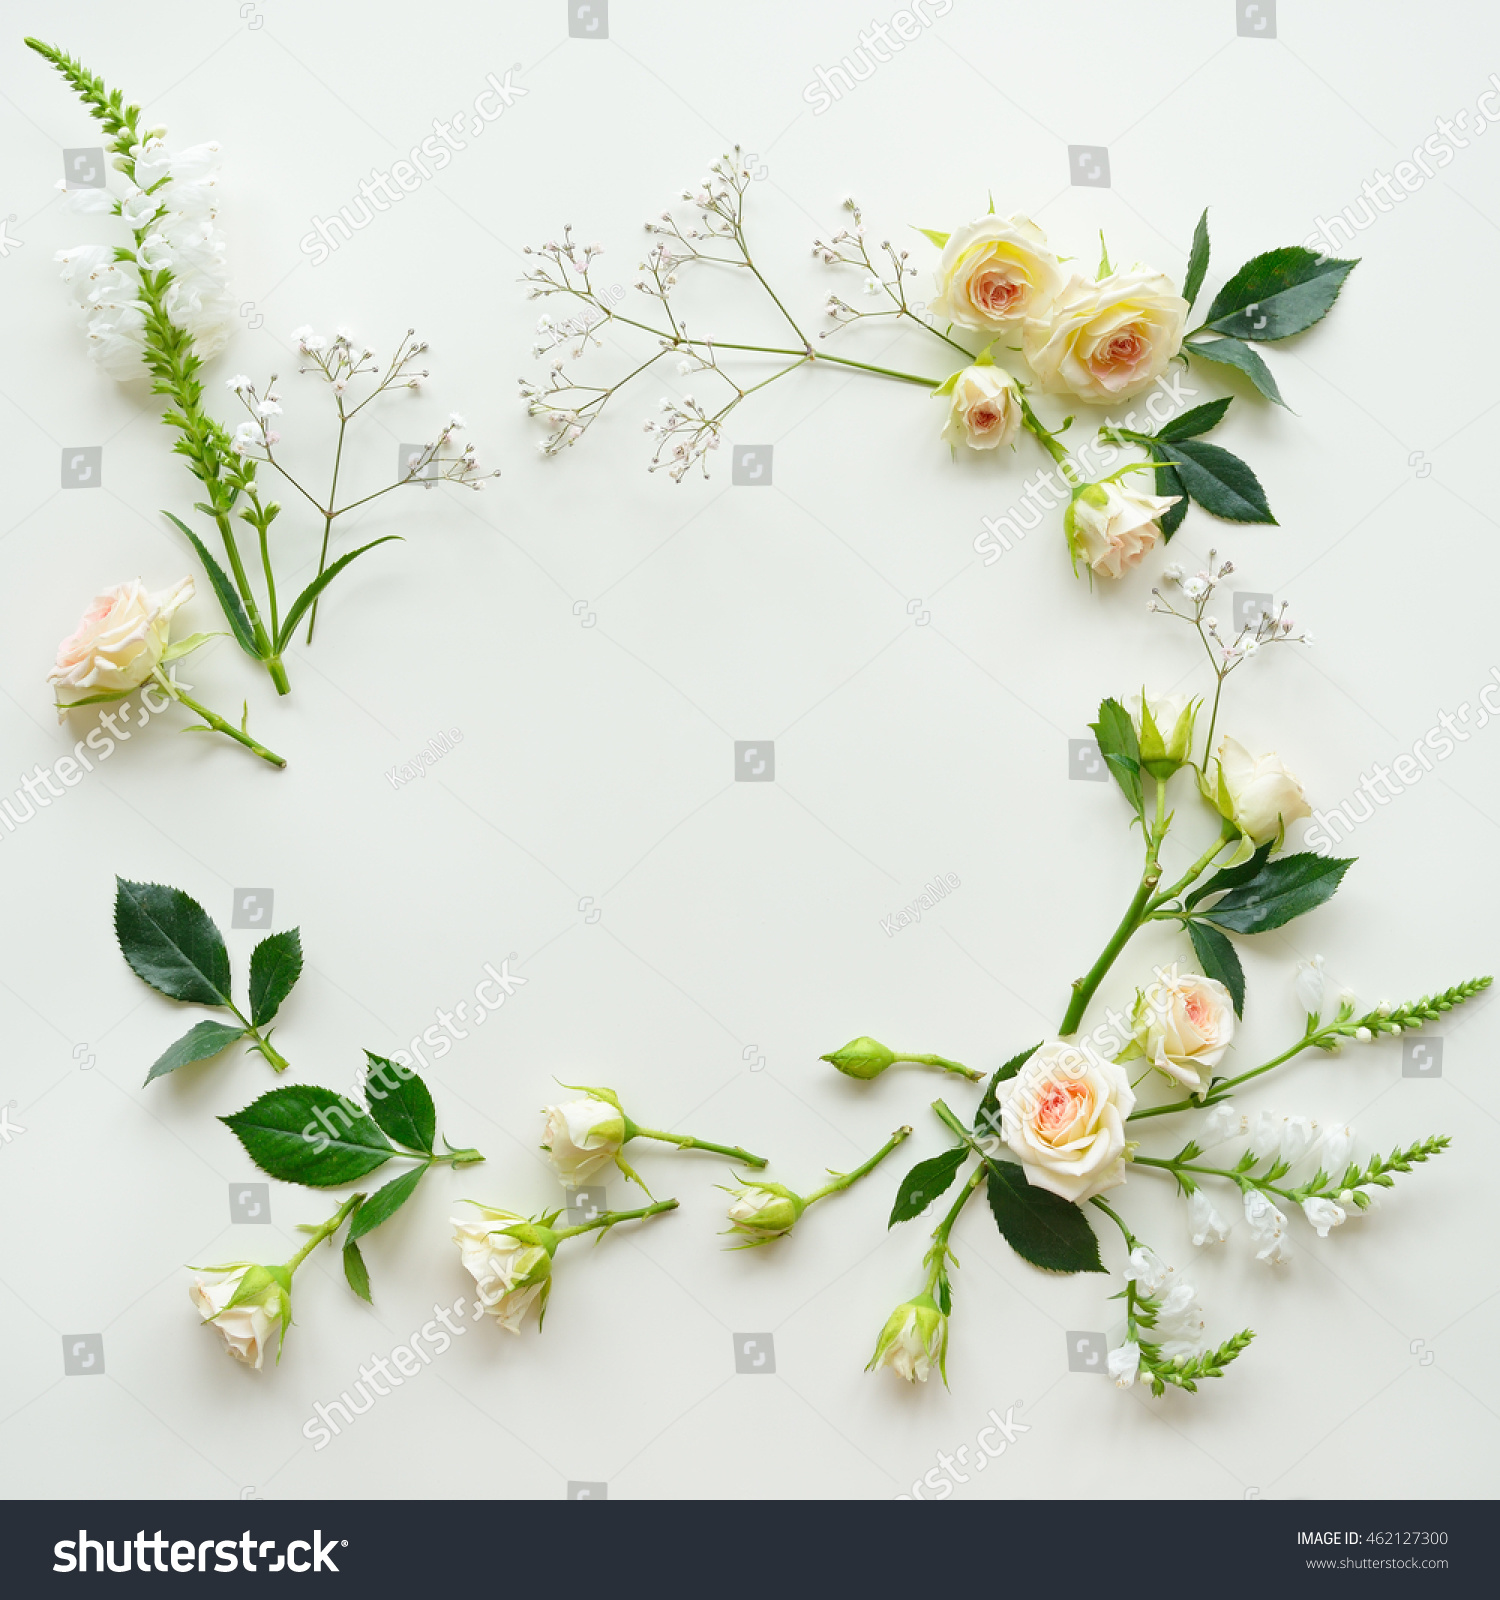 Assorted roses heads on white background stock photo 462127300 assorted roses heads on white background flowers and leaves scattered on a table overhead dhlflorist Image collections